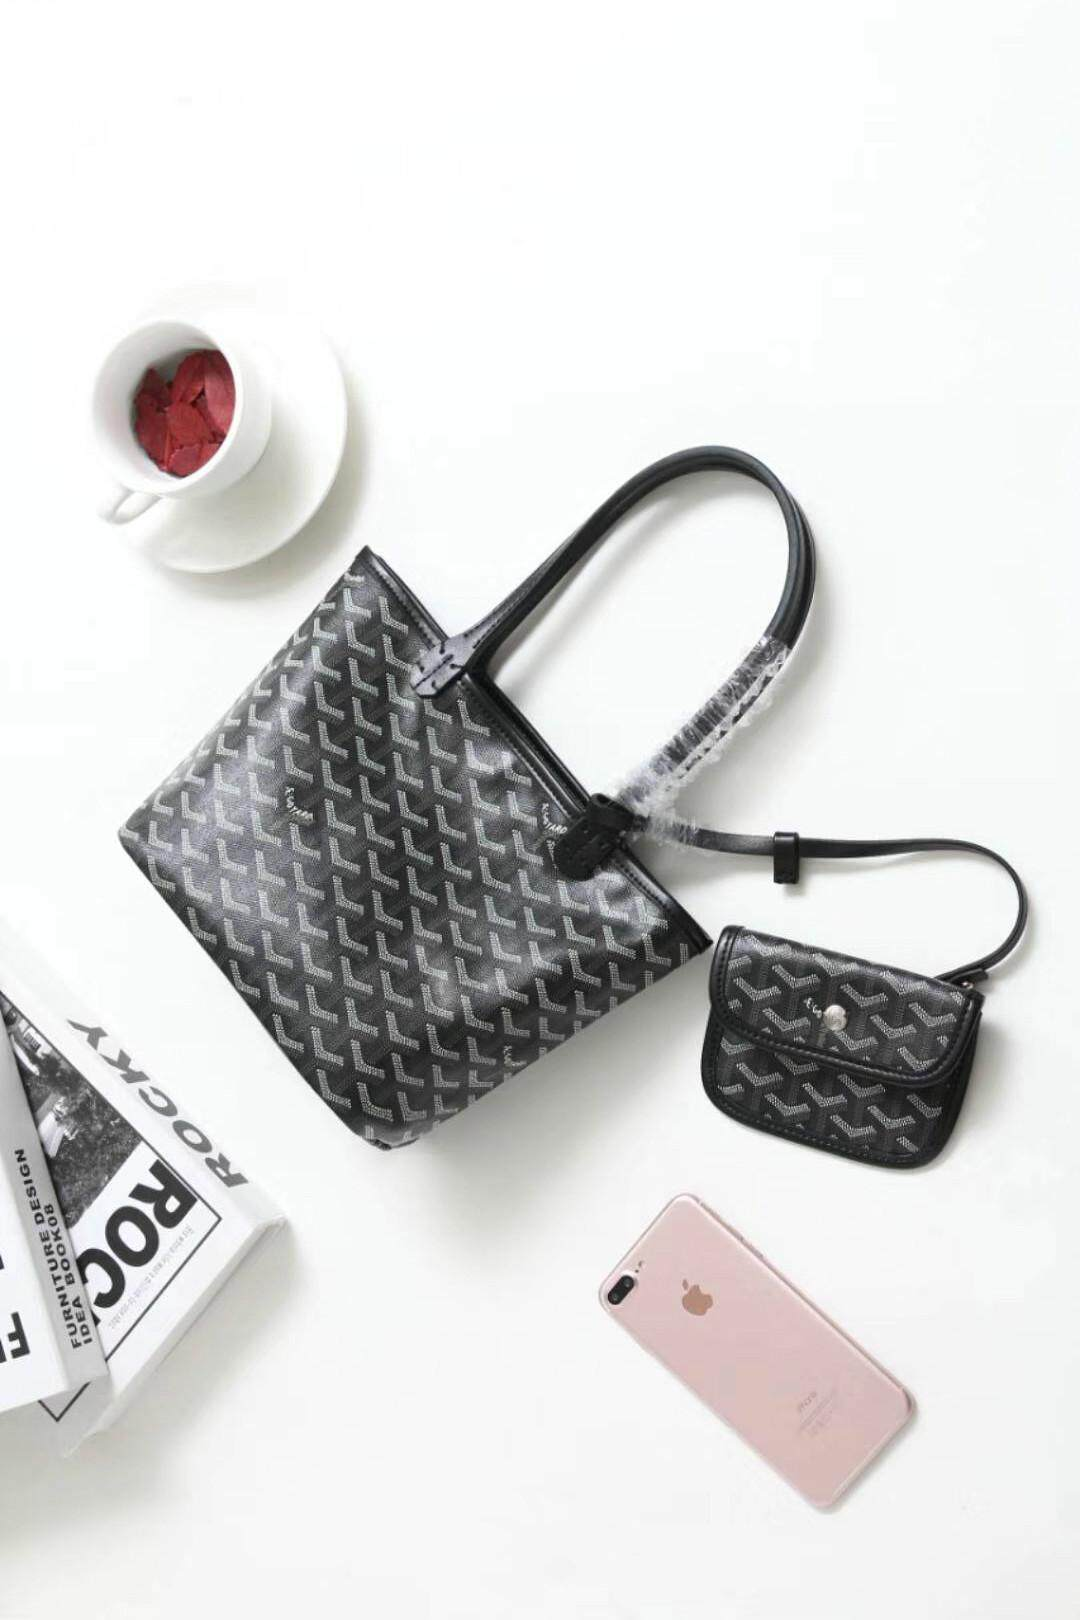 new arrival original luxury brand design women fashion leather small tote bag / shopping bag